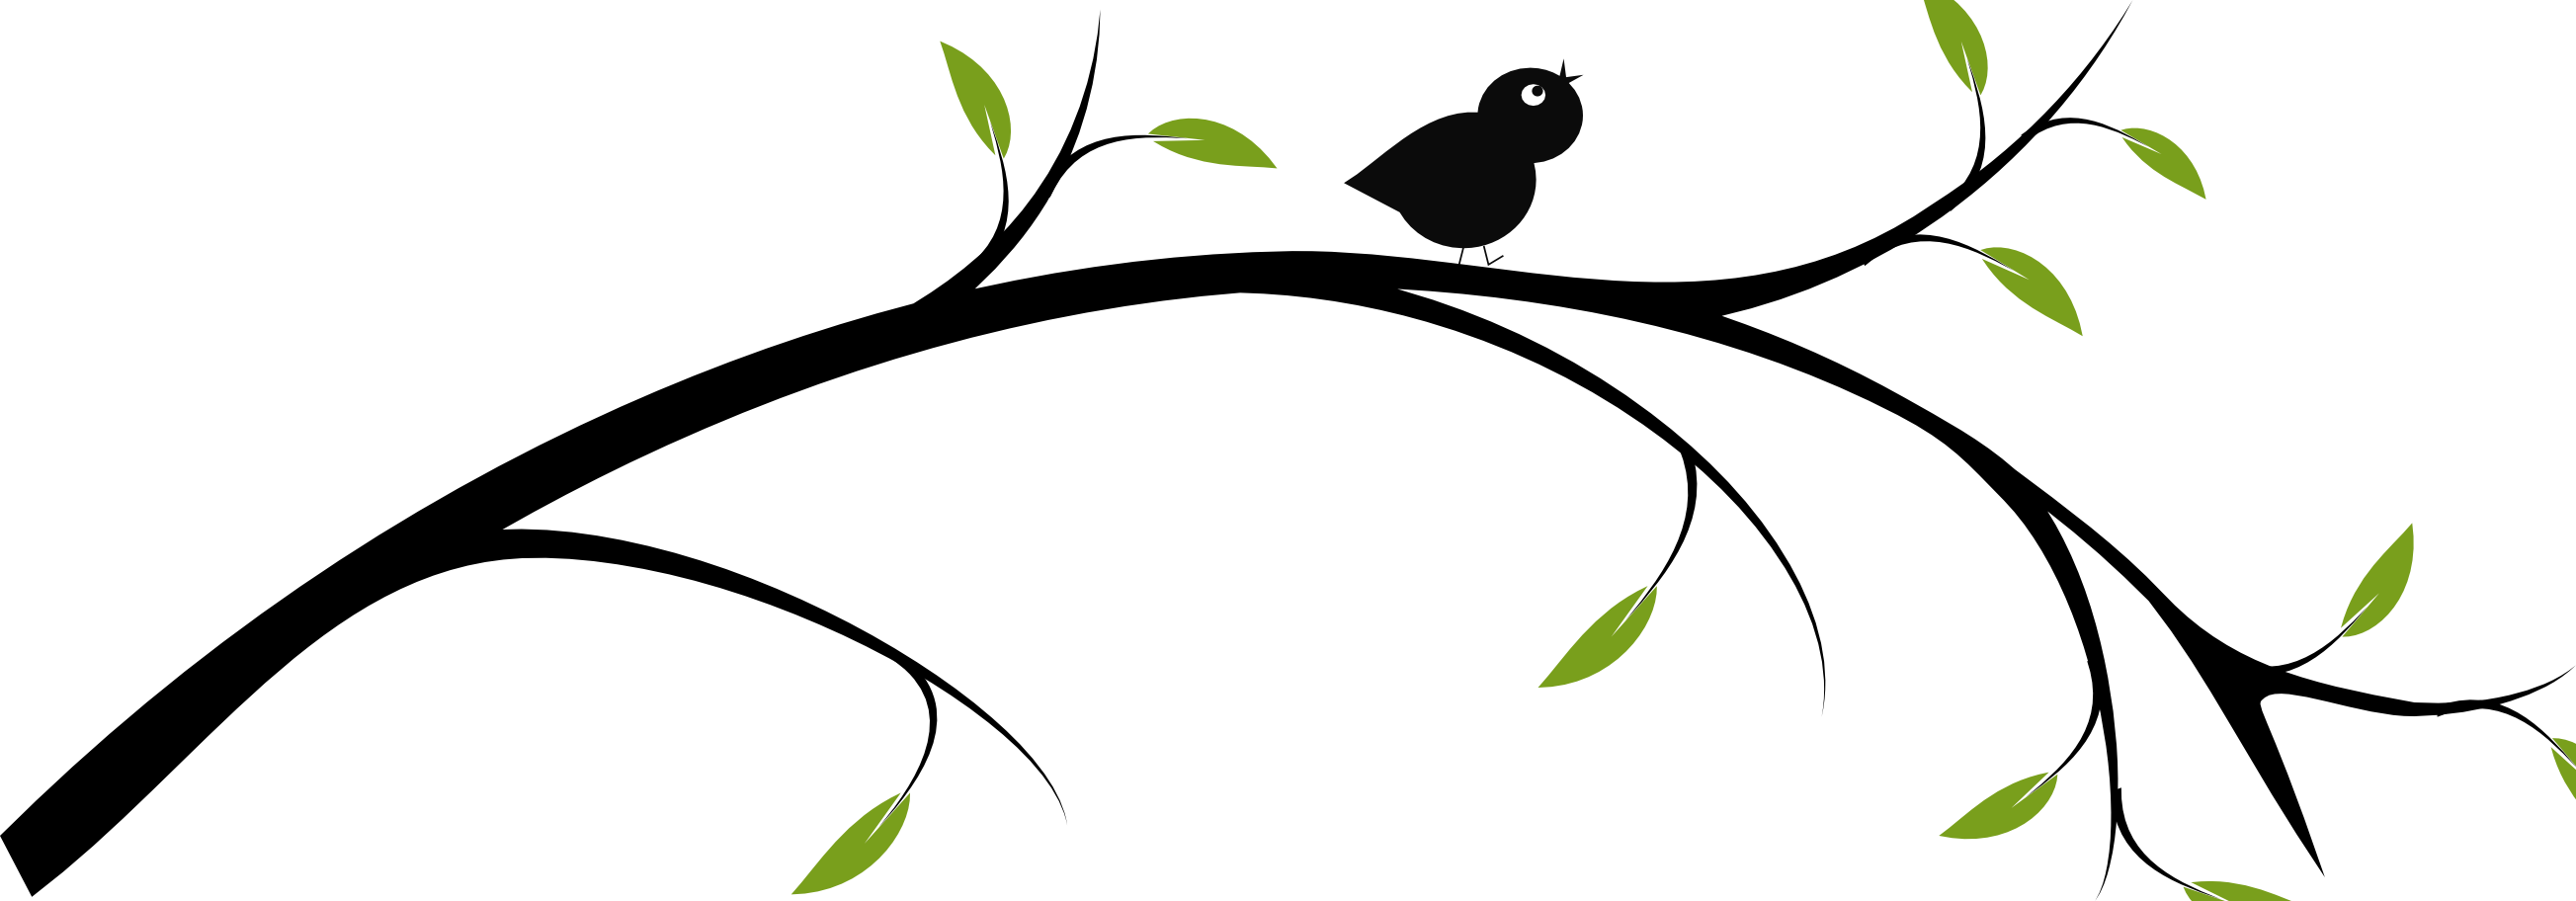 Tree with birds clipart picture transparent download Bird Tree Branch Clip Art PNG free image picture transparent download